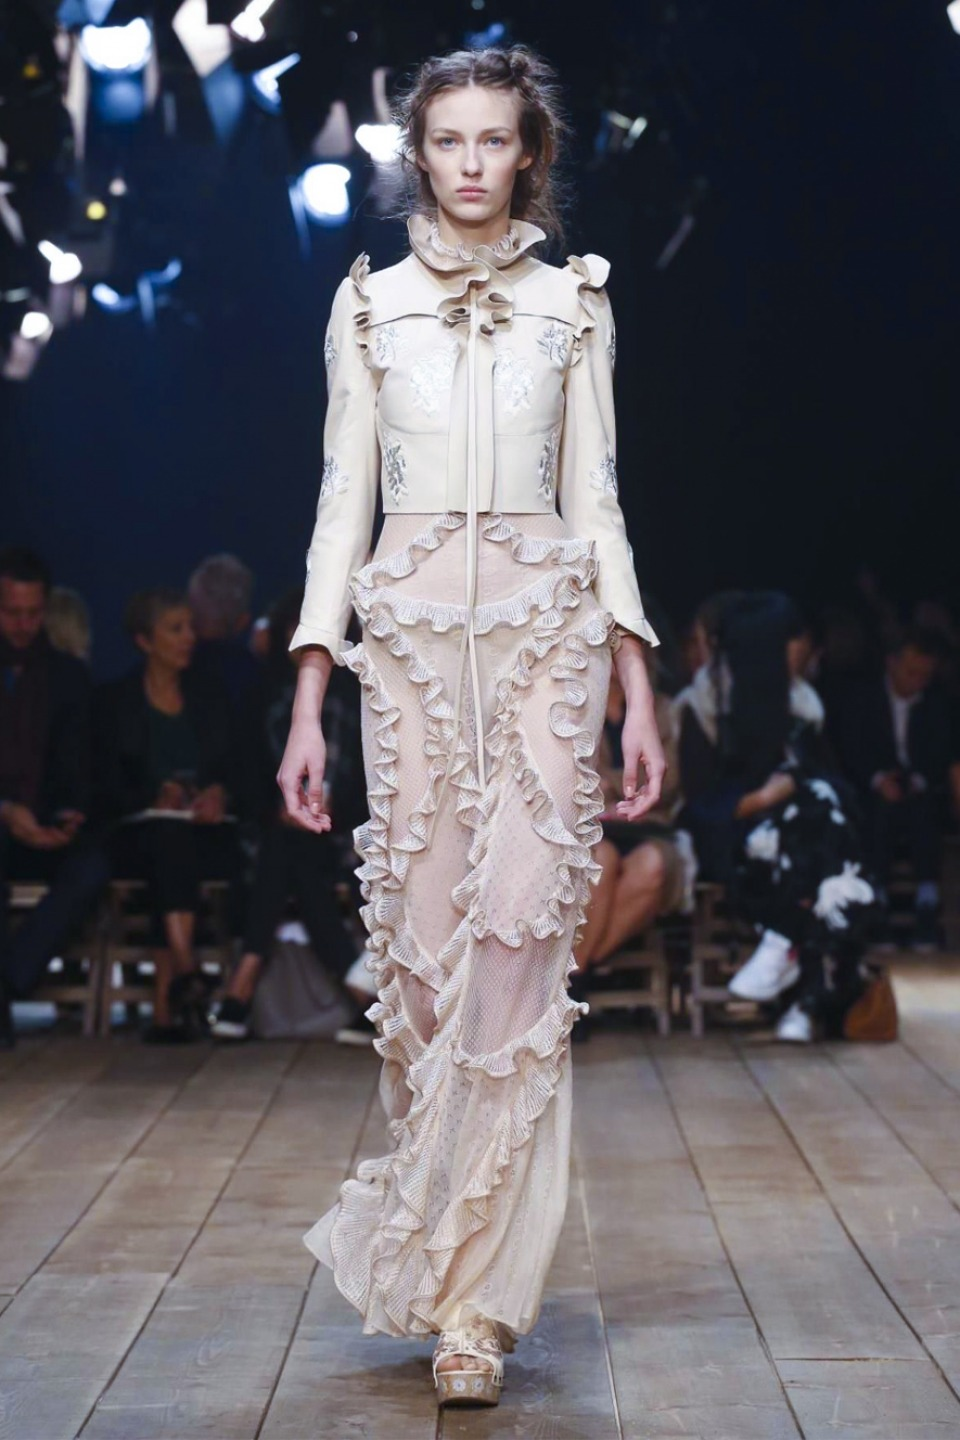 Discussion on this topic: Alexander McQueen SpringSummer 2014 RTW – Paris , alexander-mcqueen-springsummer-2014-rtw-paris/